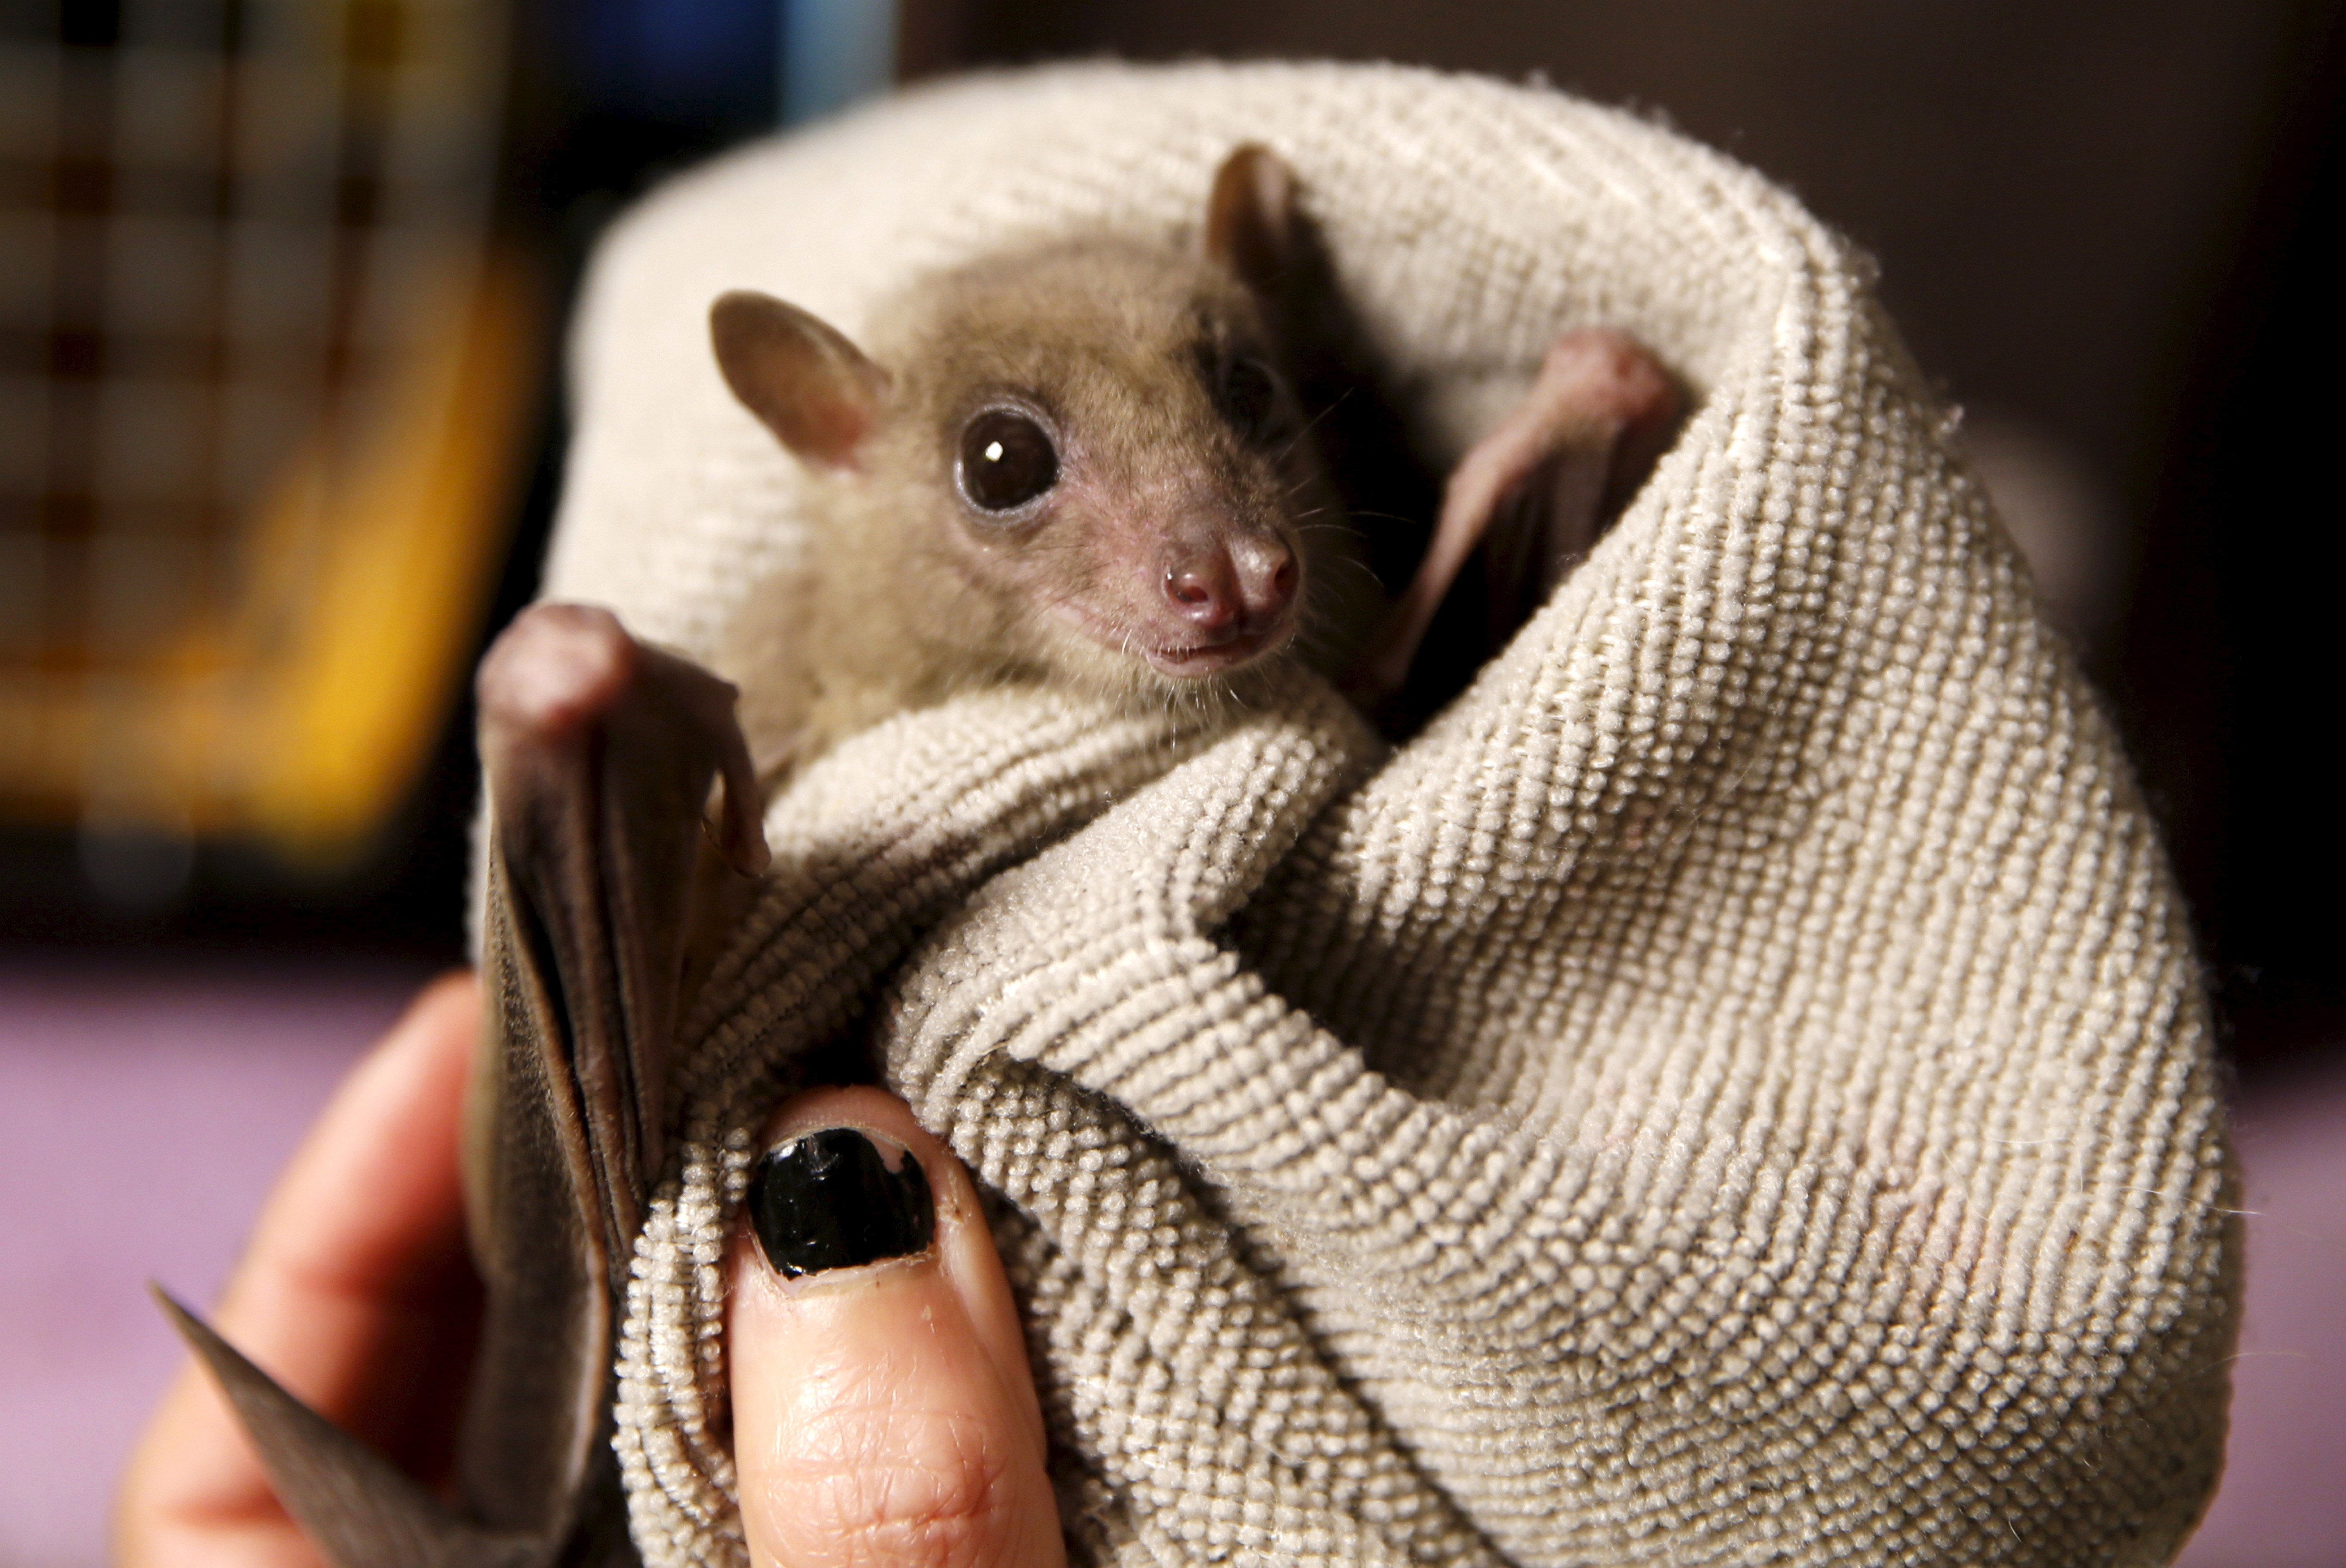 Bats are special. But not in a good way.